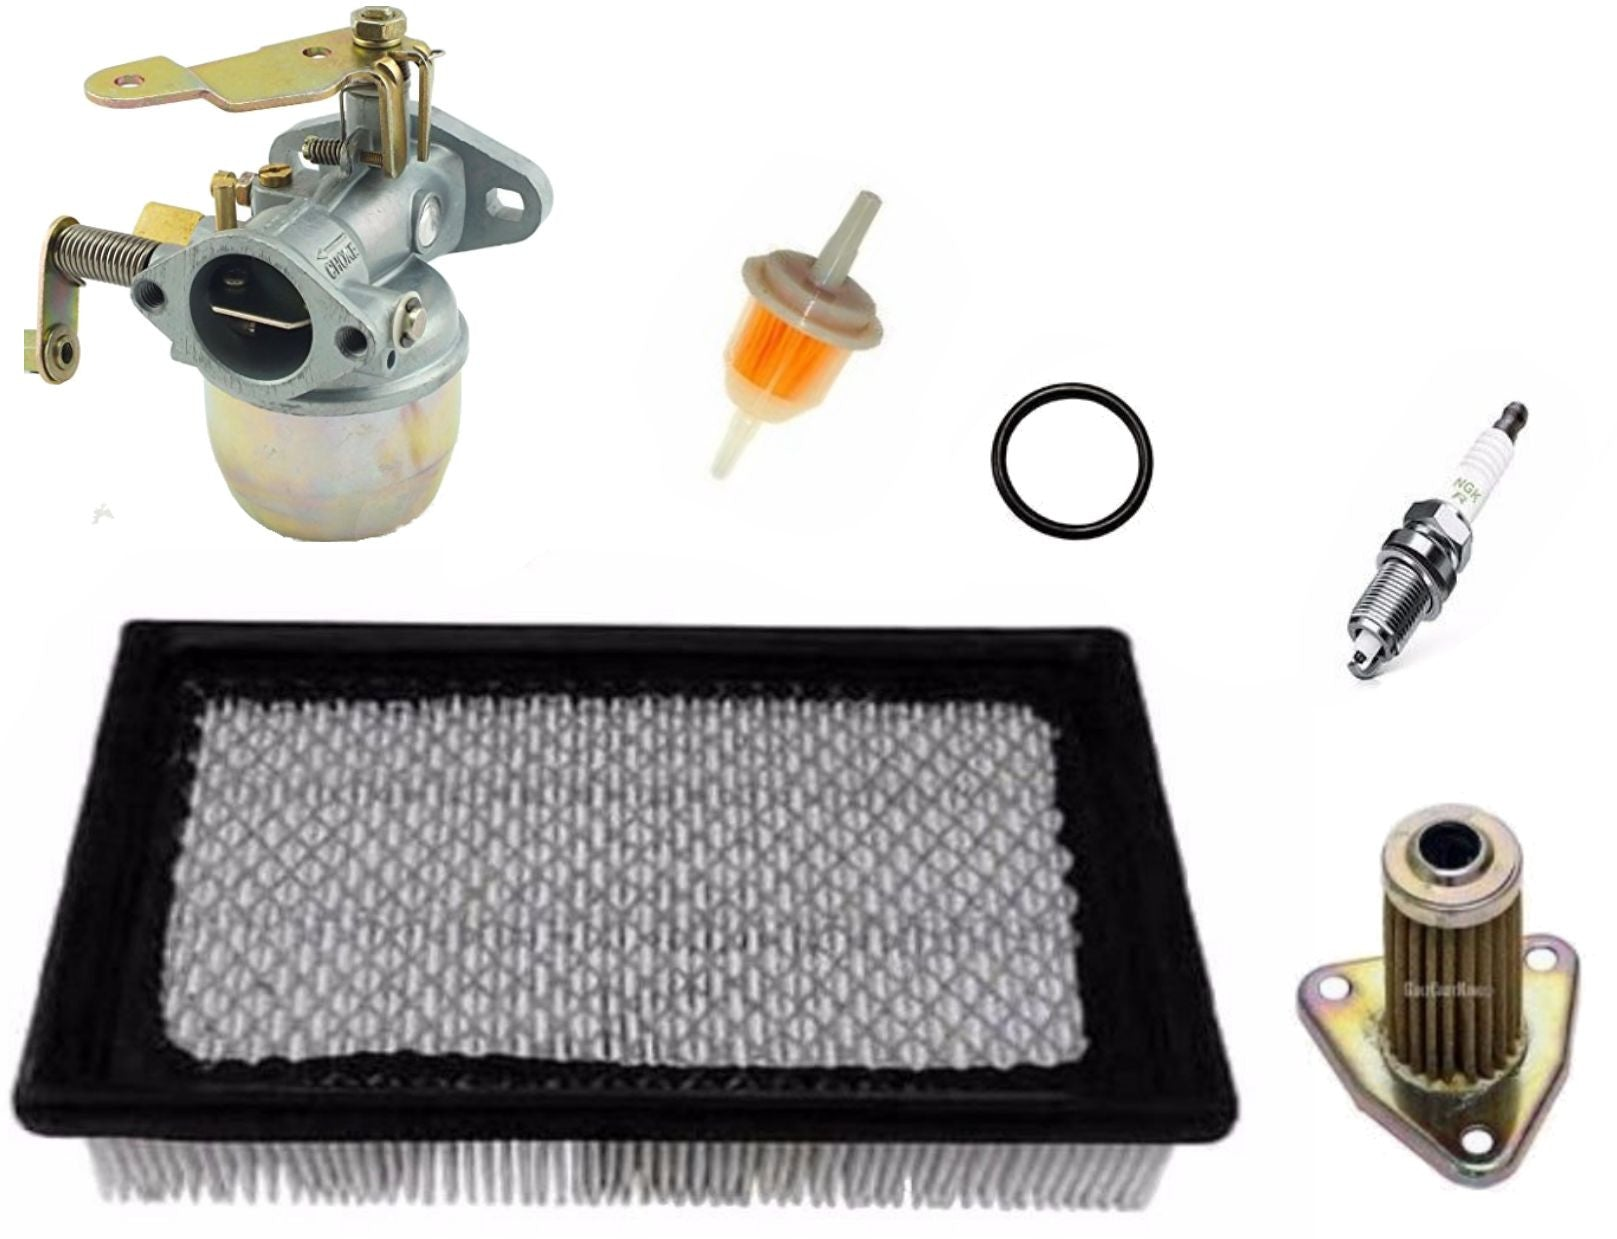 TUNE UP KIT EZGO MARATHON GOLF CART 1991-1994 4 CYCLE GAS CARBURETOR